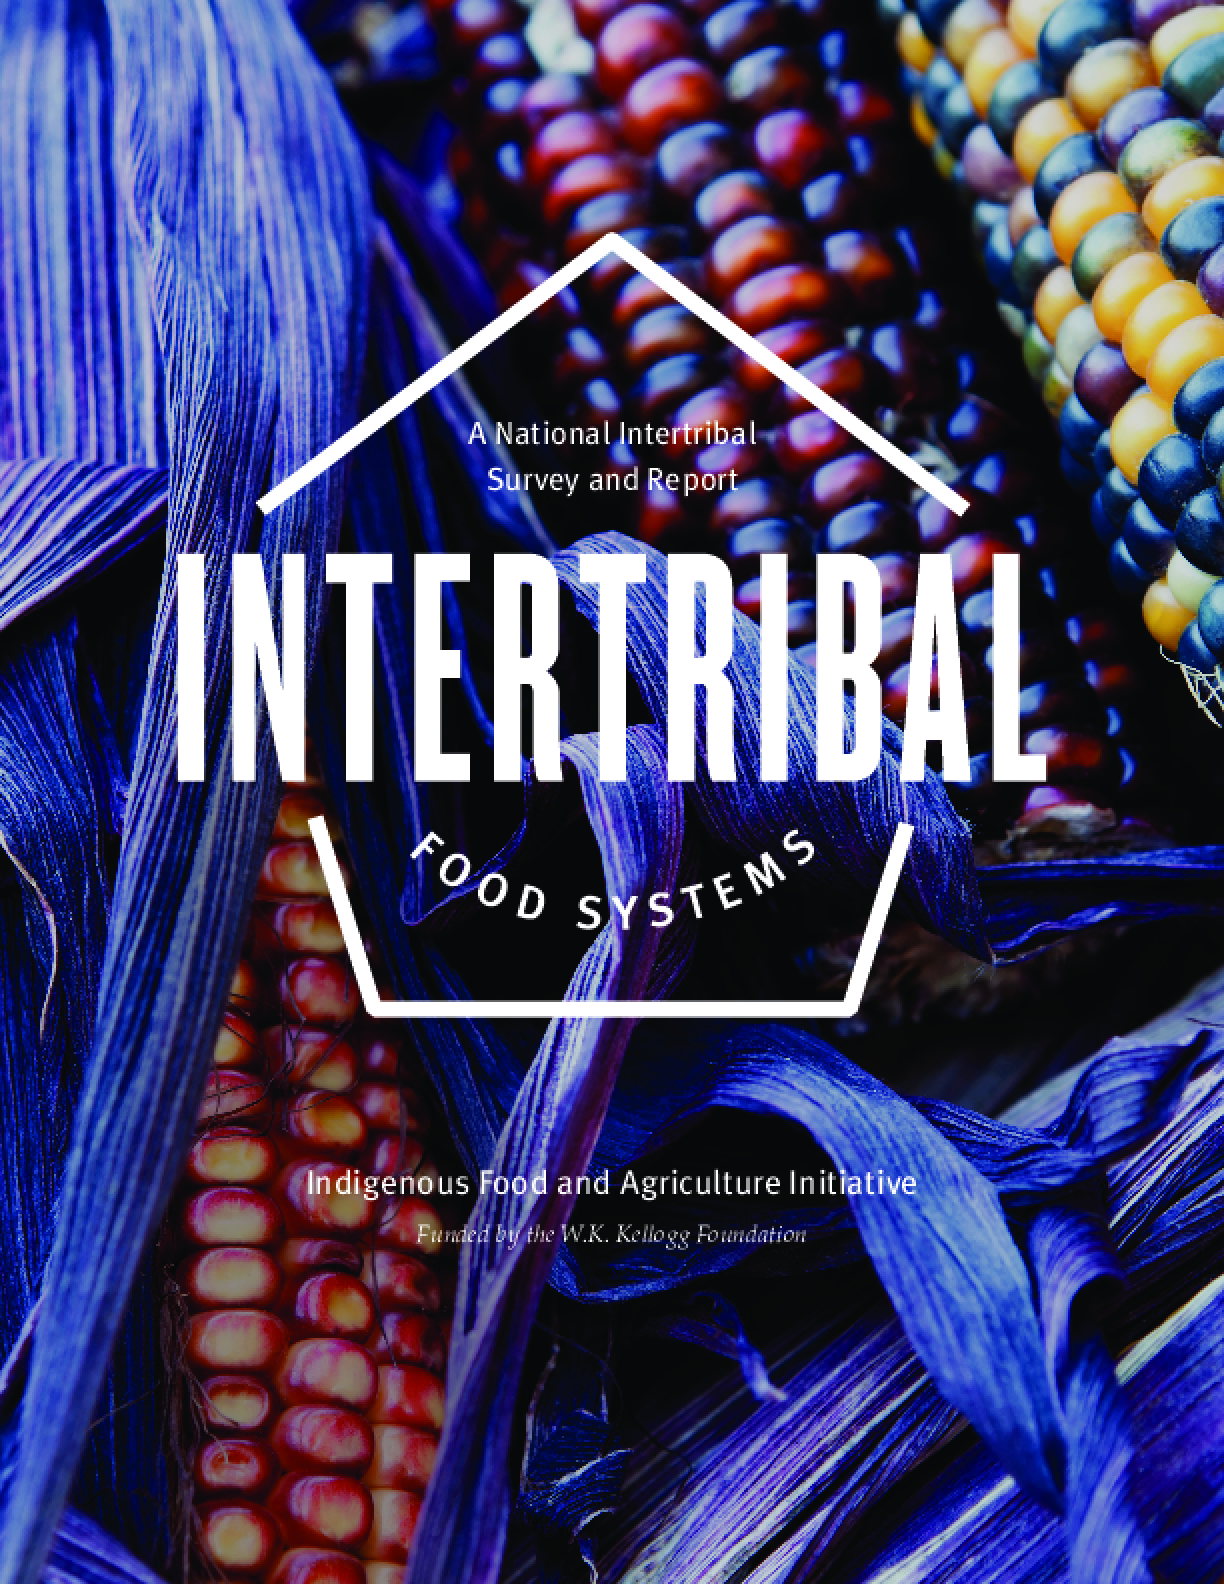 Intertribal Food Systems: A National Intertribal Survey and Report